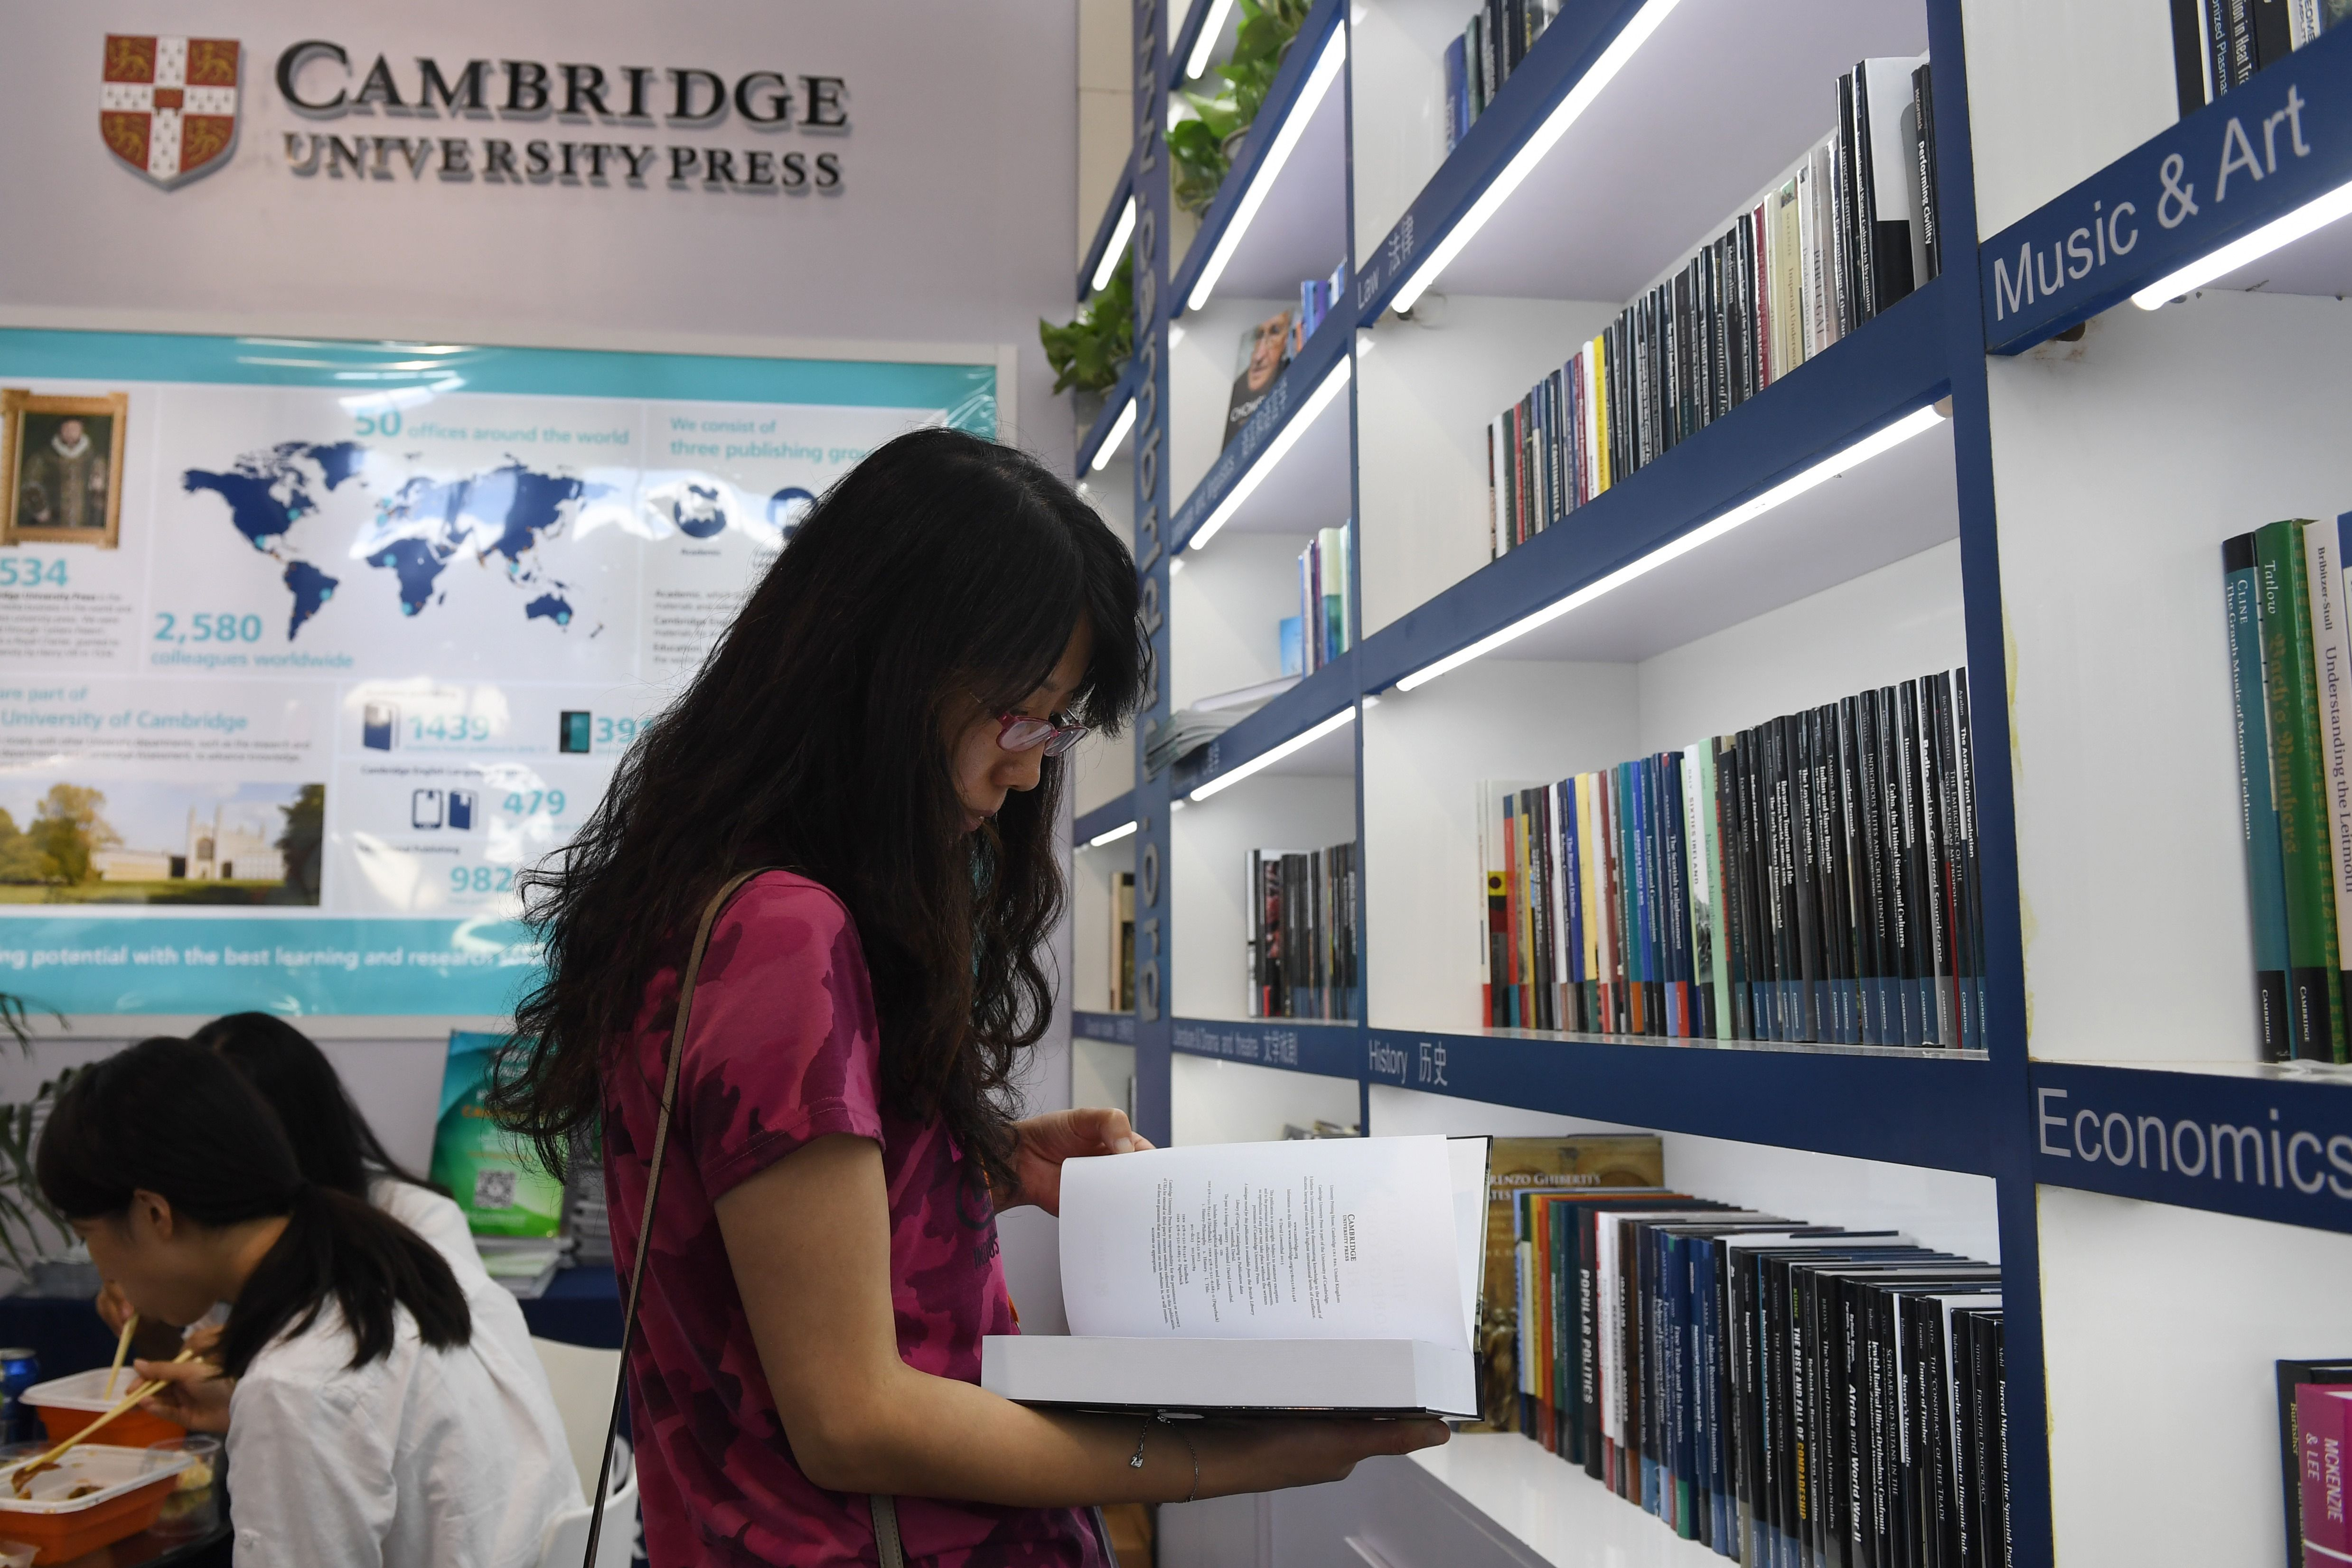 This photo taken on August 23, 2017 shows a woman reading a book at the Cambridge University Press stand at the Beijing International Book Fair in Beijing. (GREG BAKER/AFP/Getty Images)